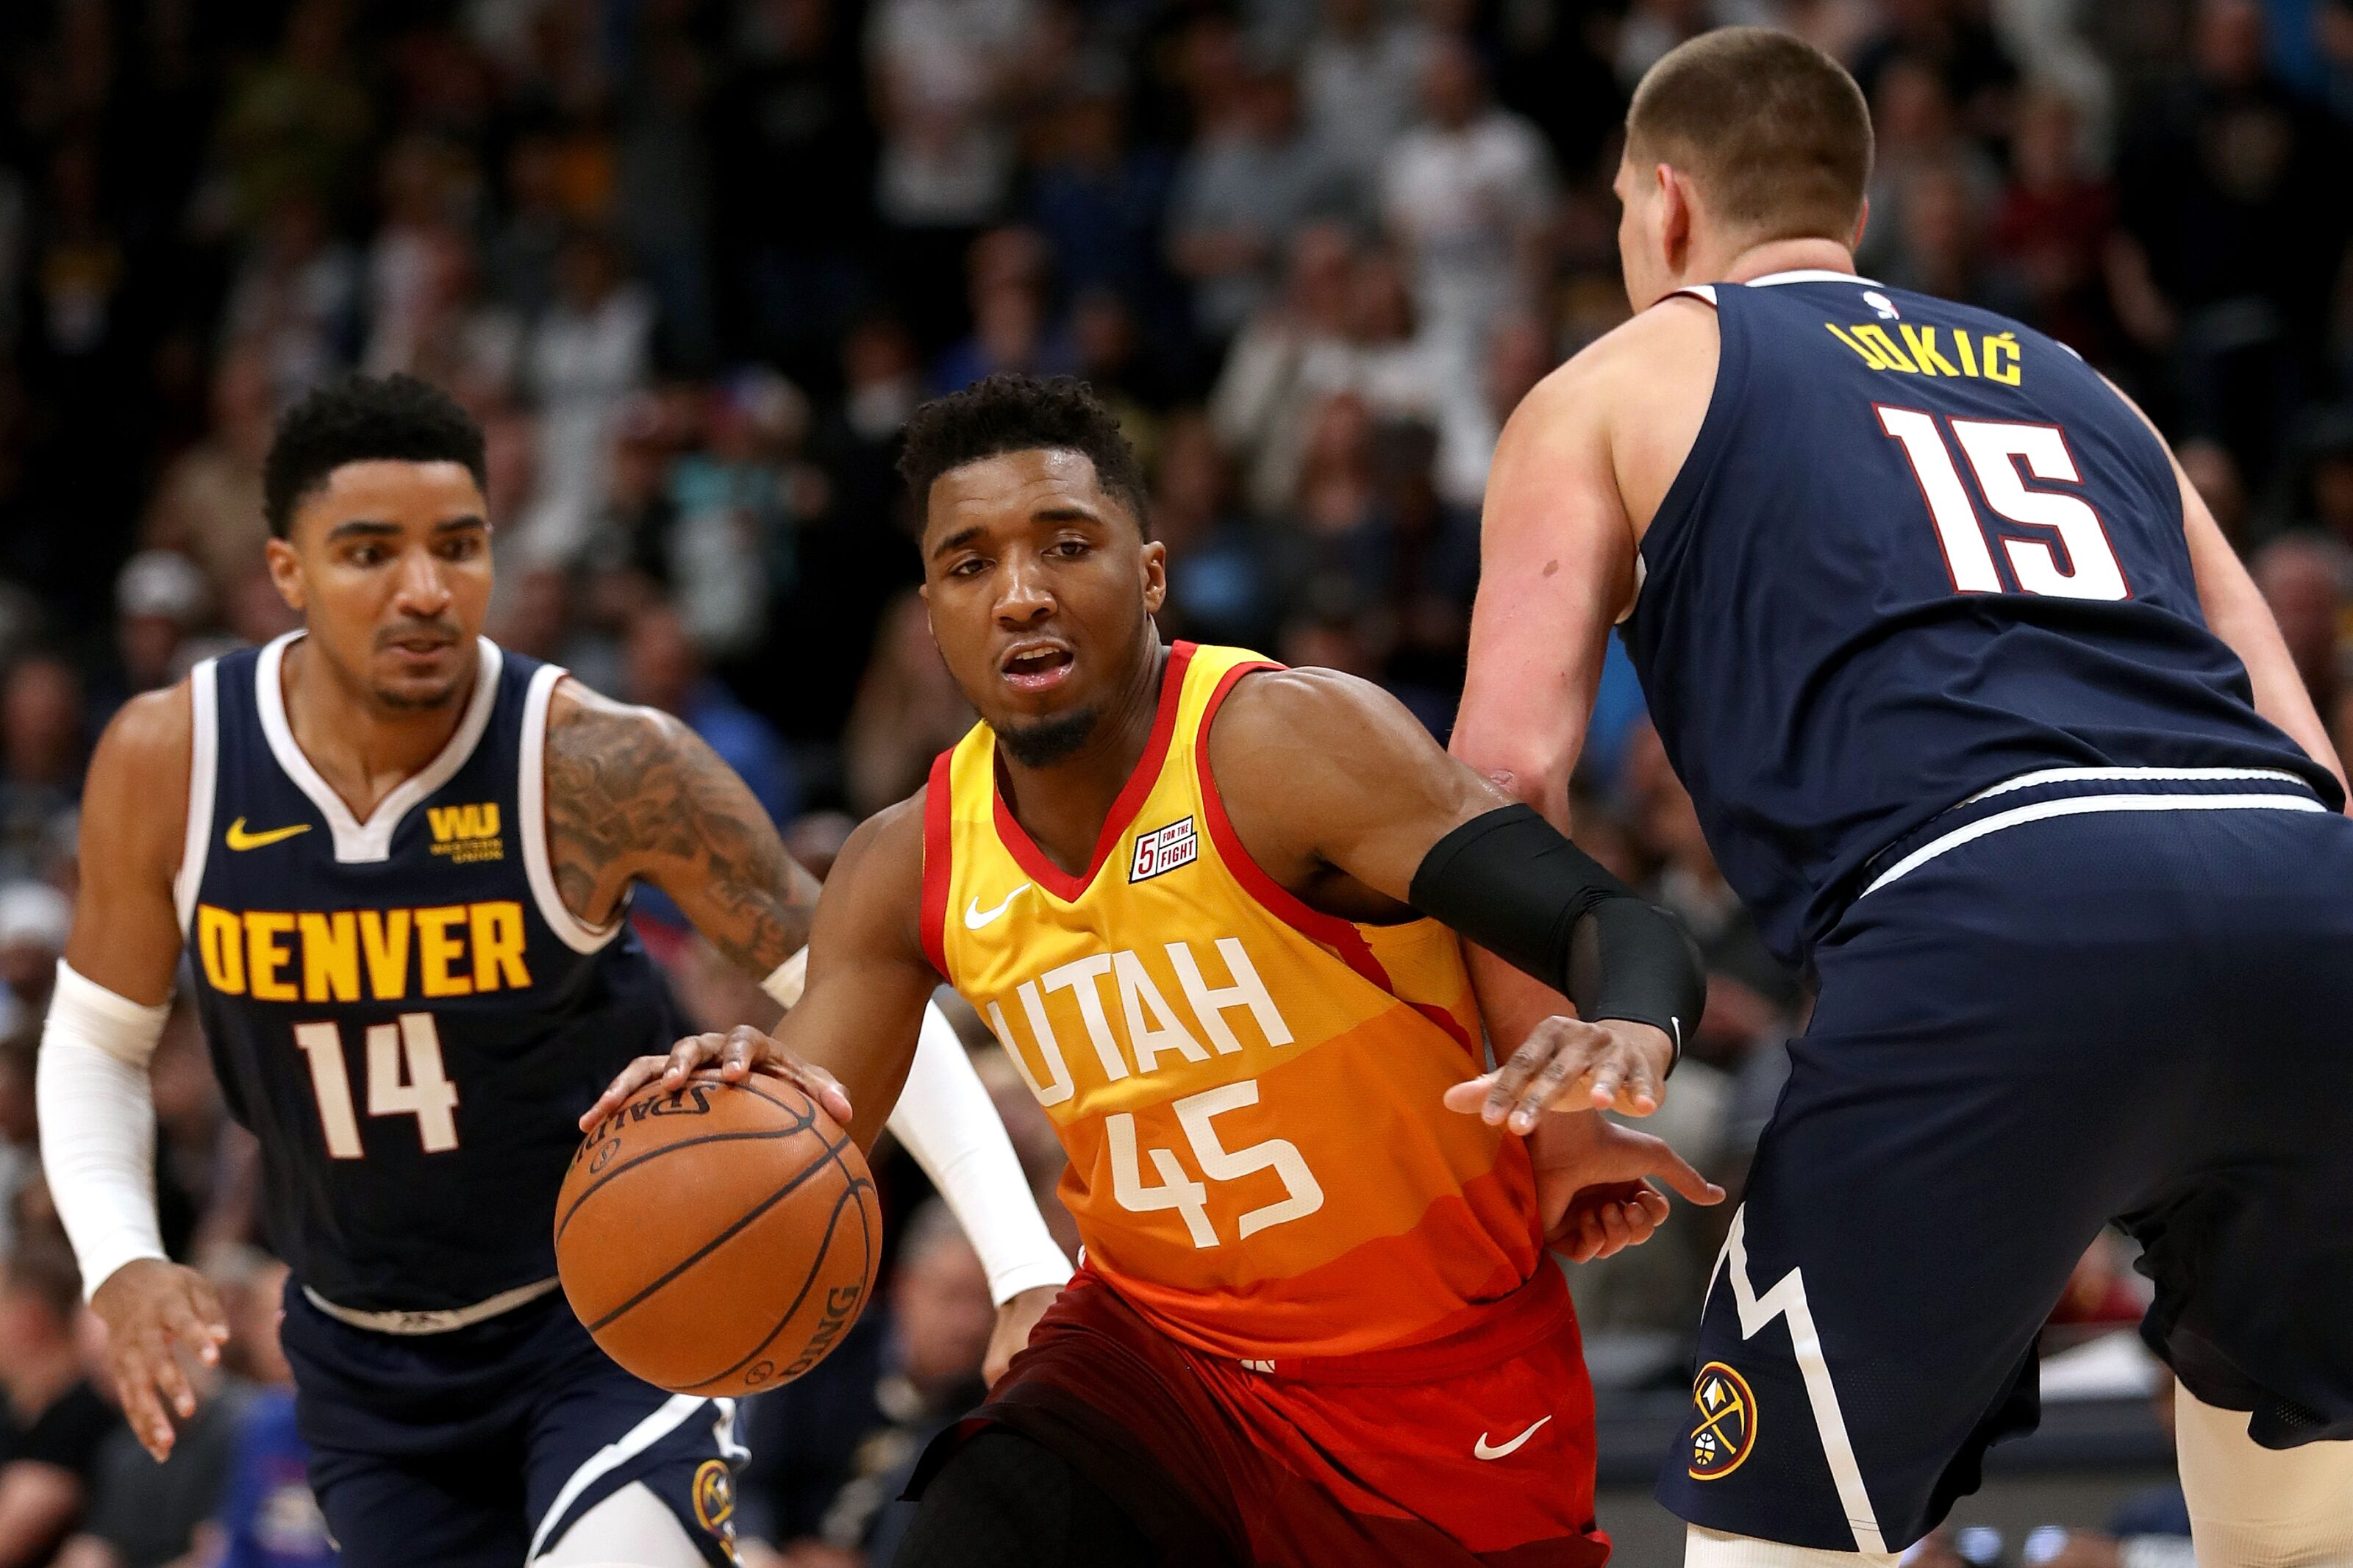 Now's the time for the Utah Jazz to put up or shut up in the West